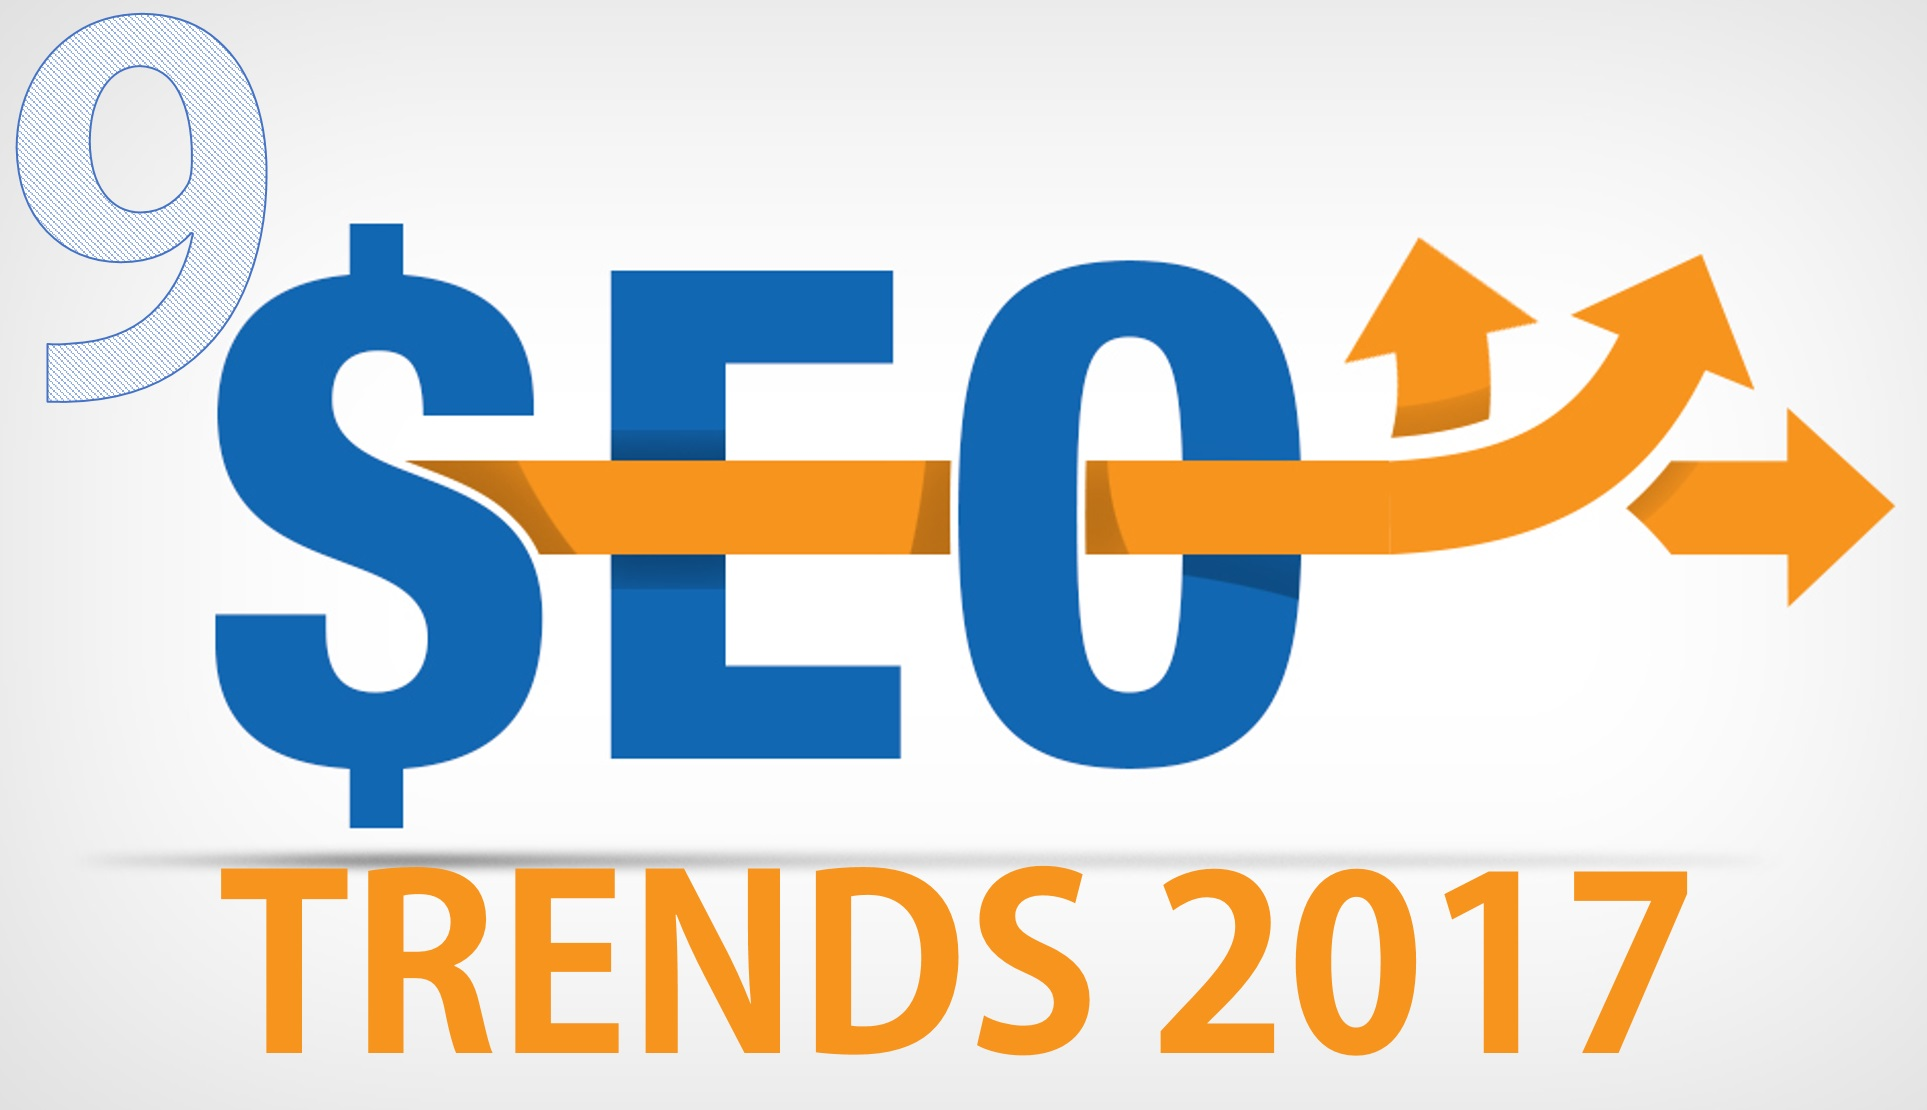 9 SEO trends 2017 - candentseo